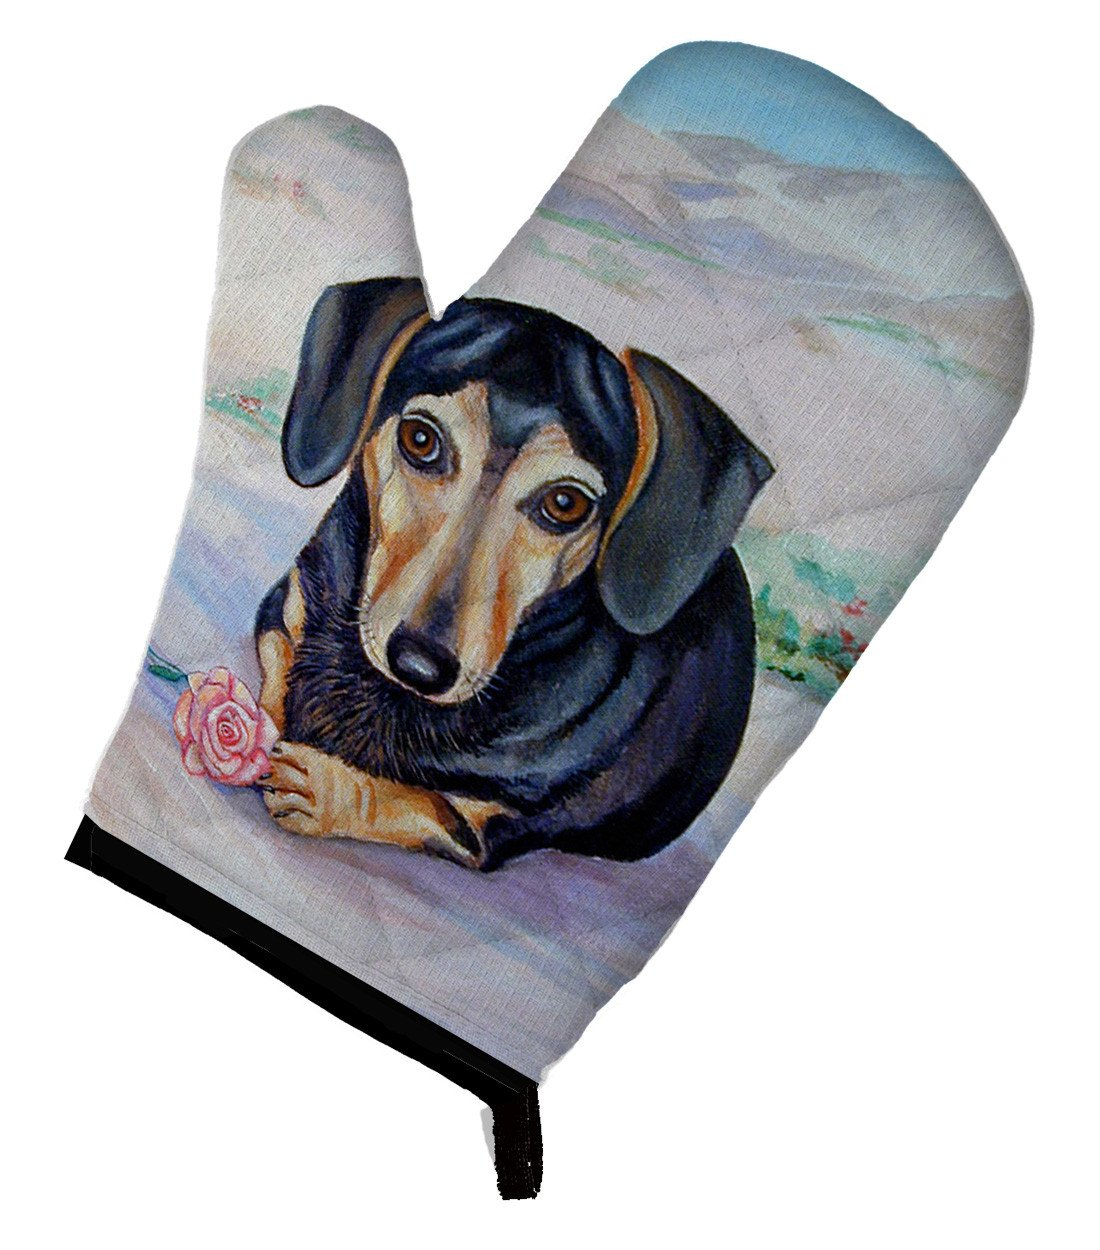 Black and Cream Dachshund Oven Mitt 7076OVMT - the-store.com